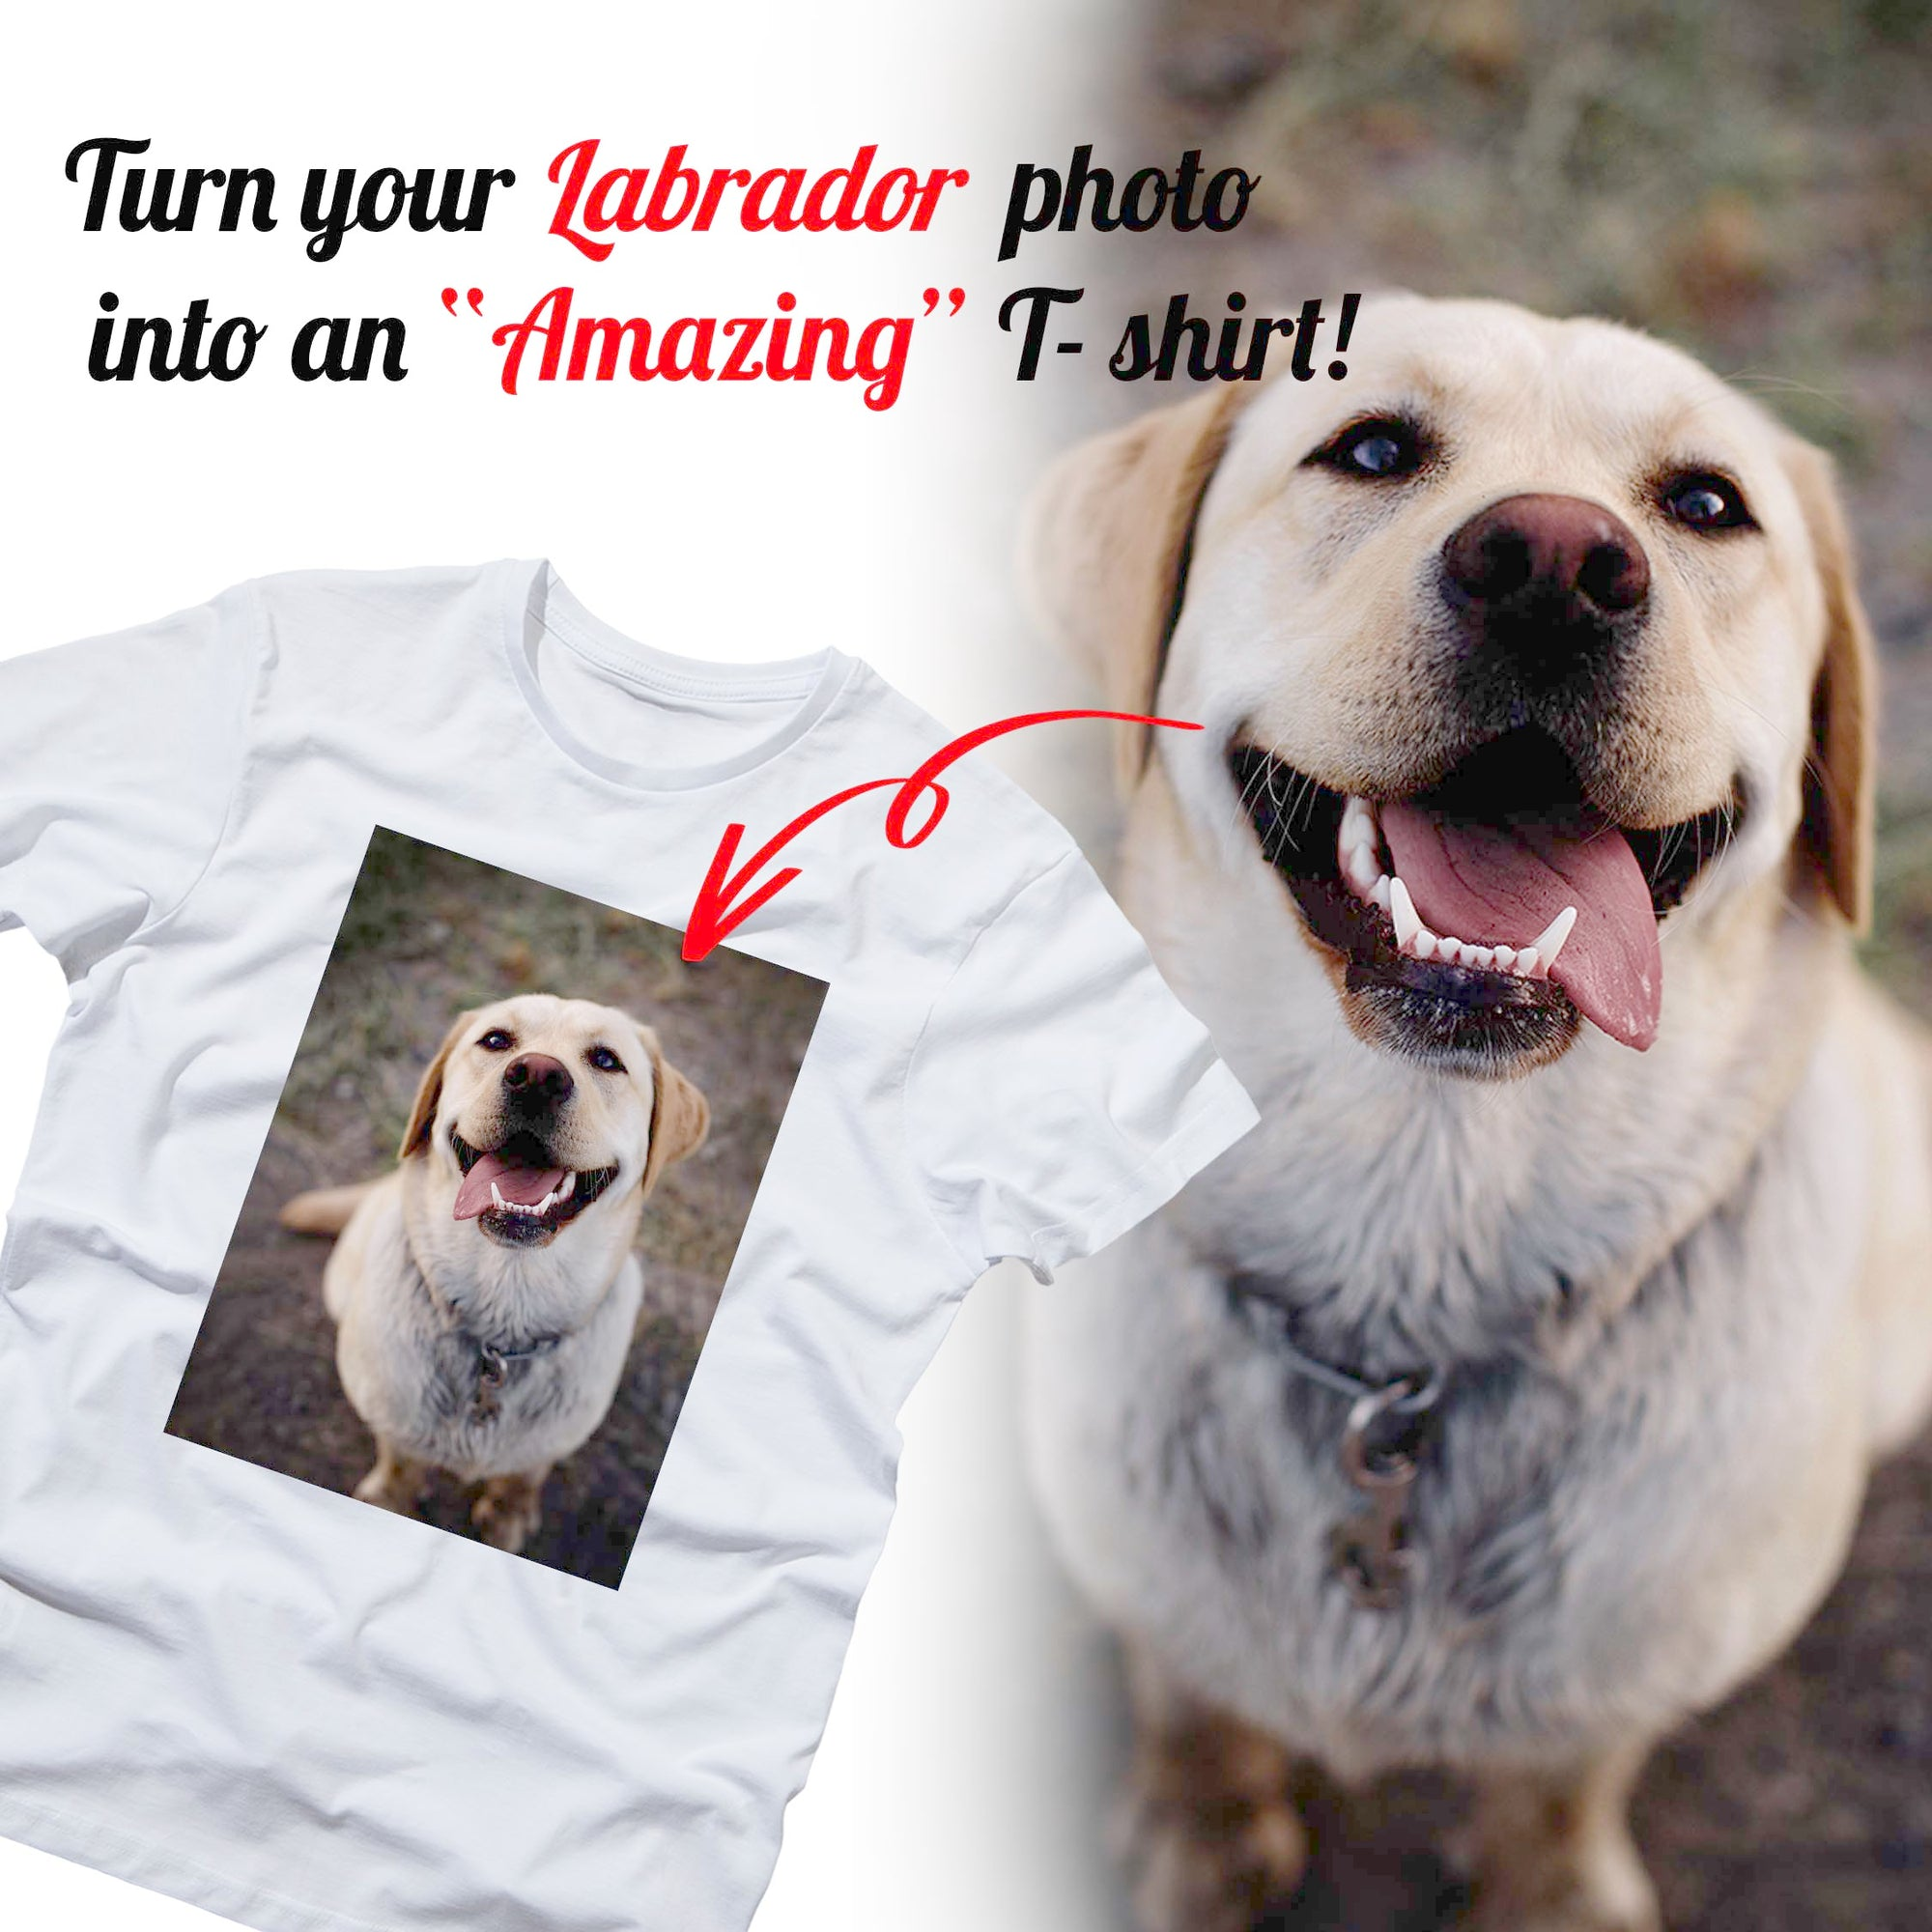 PERSONALIZED unisex t-shirt - upload your LABRADOR photos